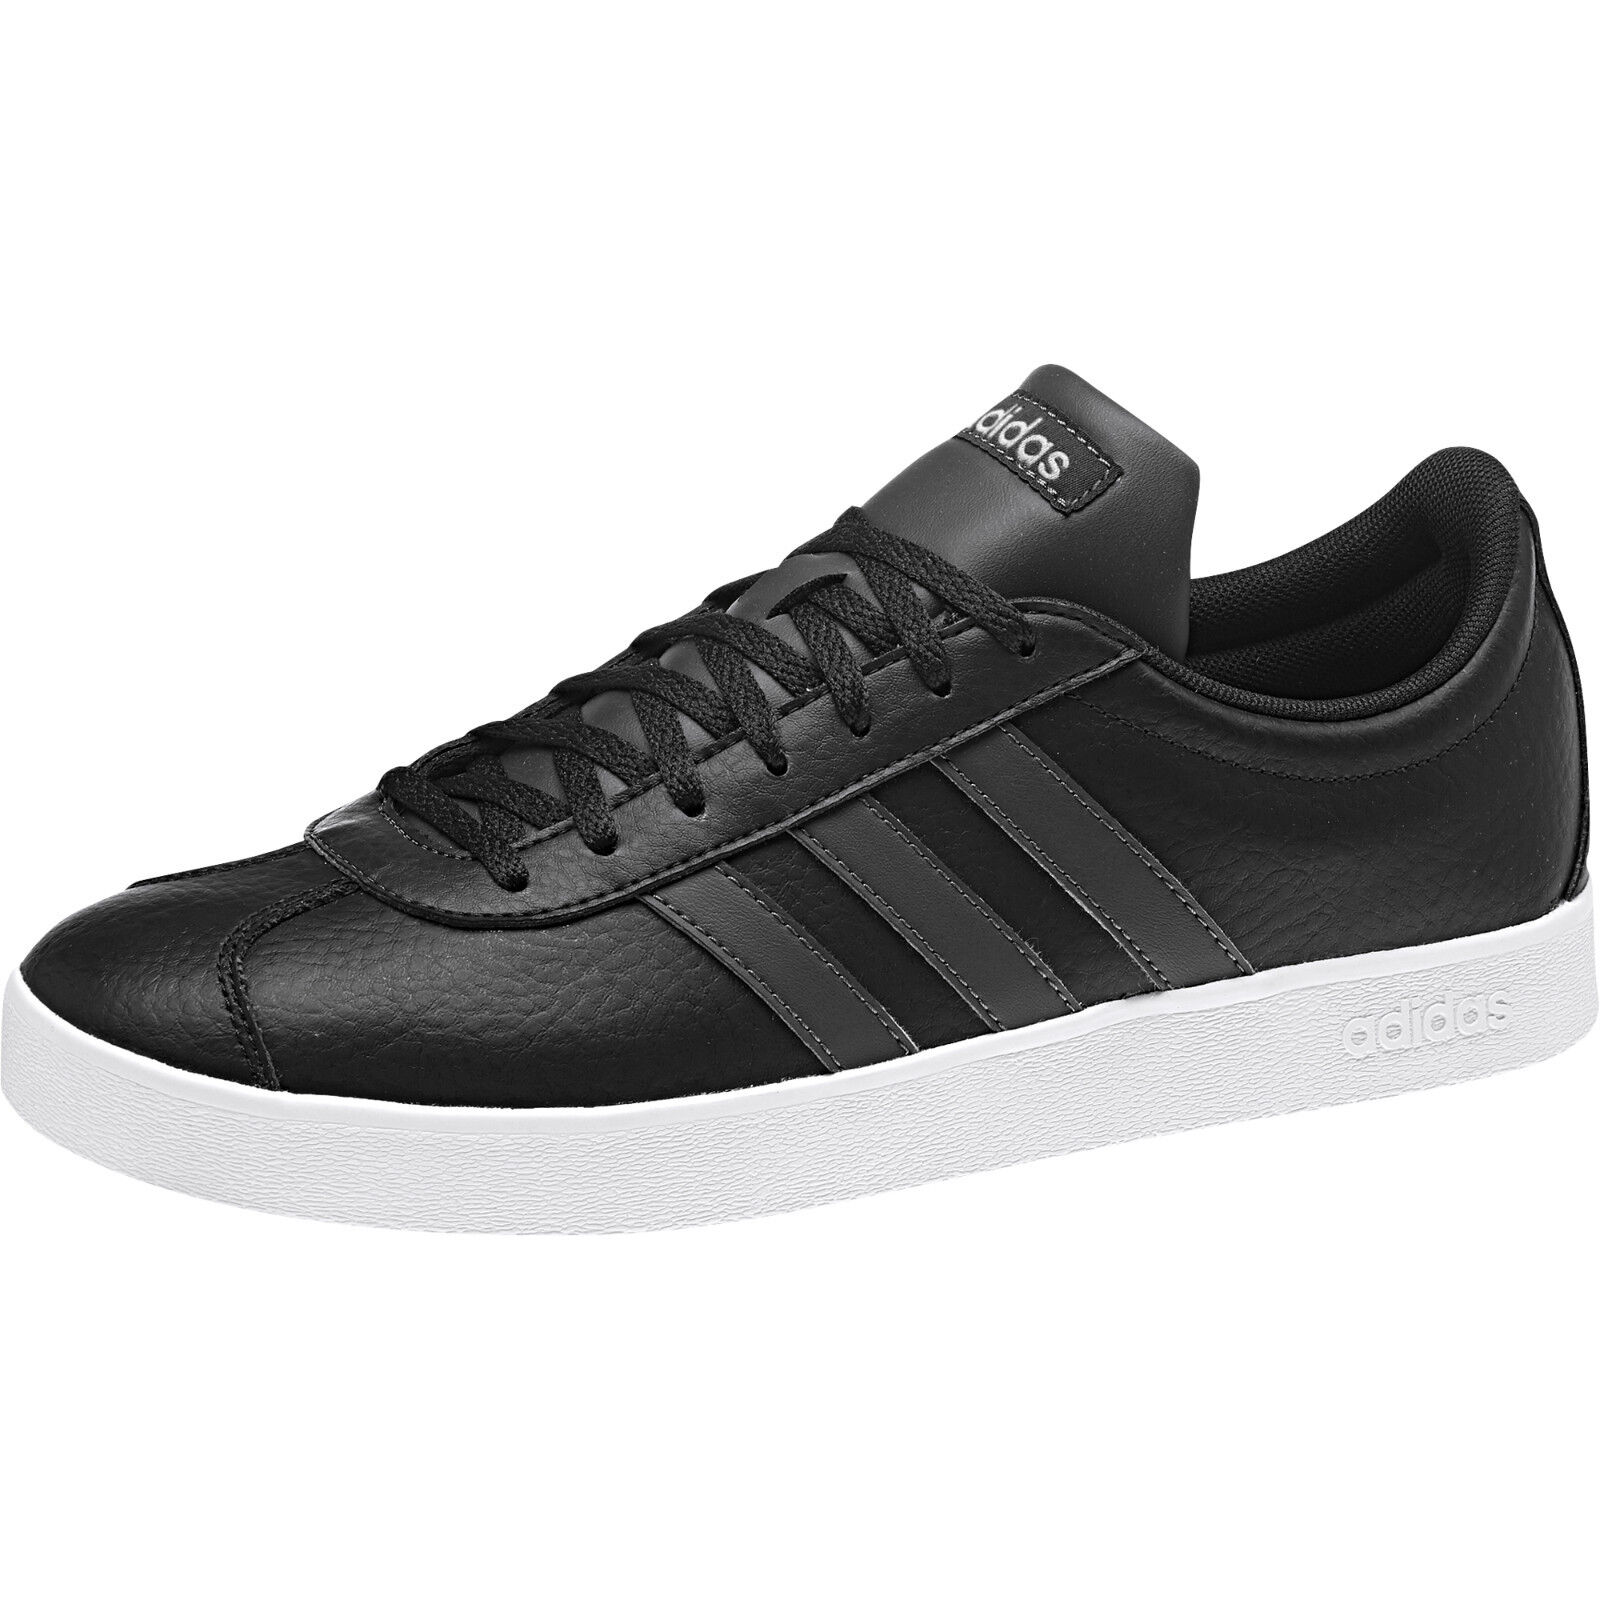 Adidas Women shoes Casual Sneakers Fashion VL Court Trainers Running New B42315